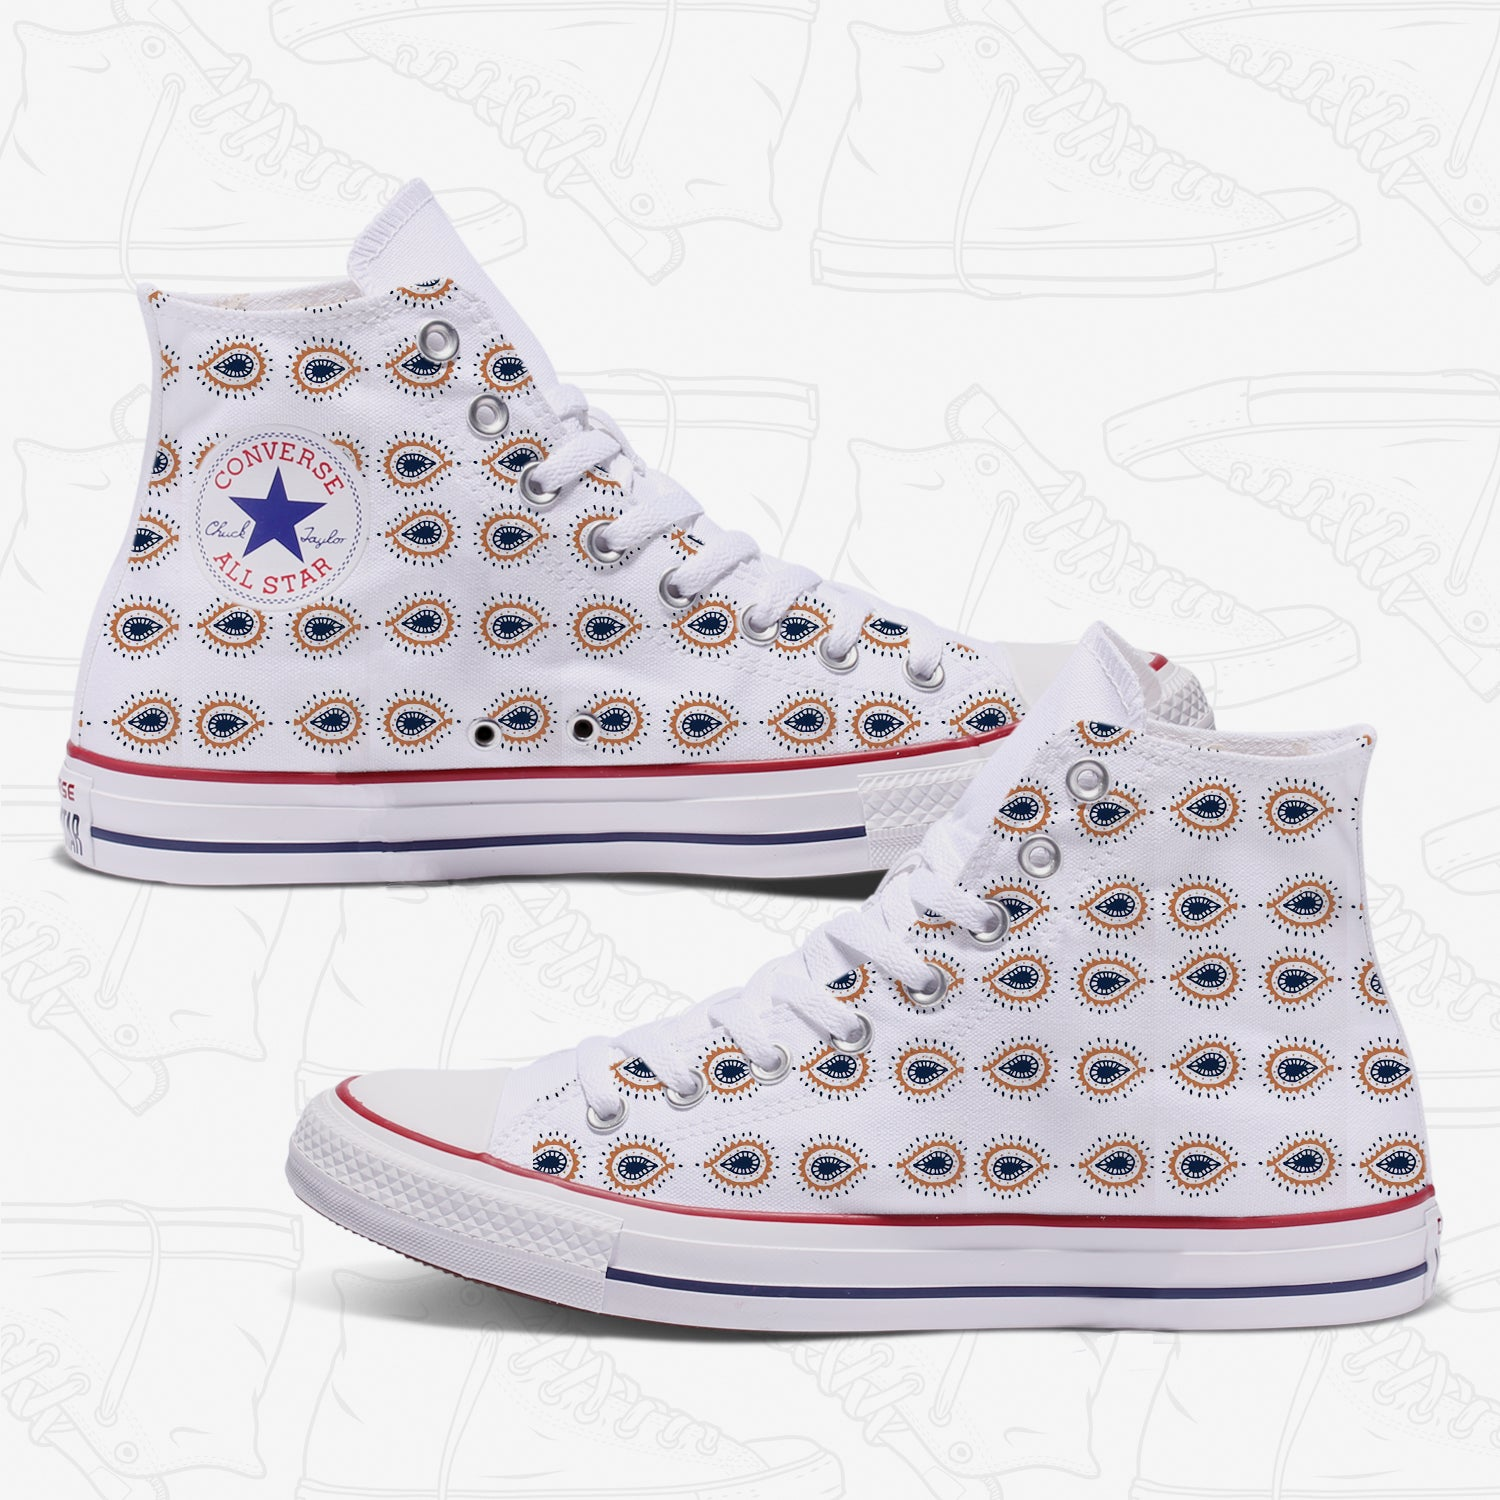 Boho Chic Womans Custom Converse